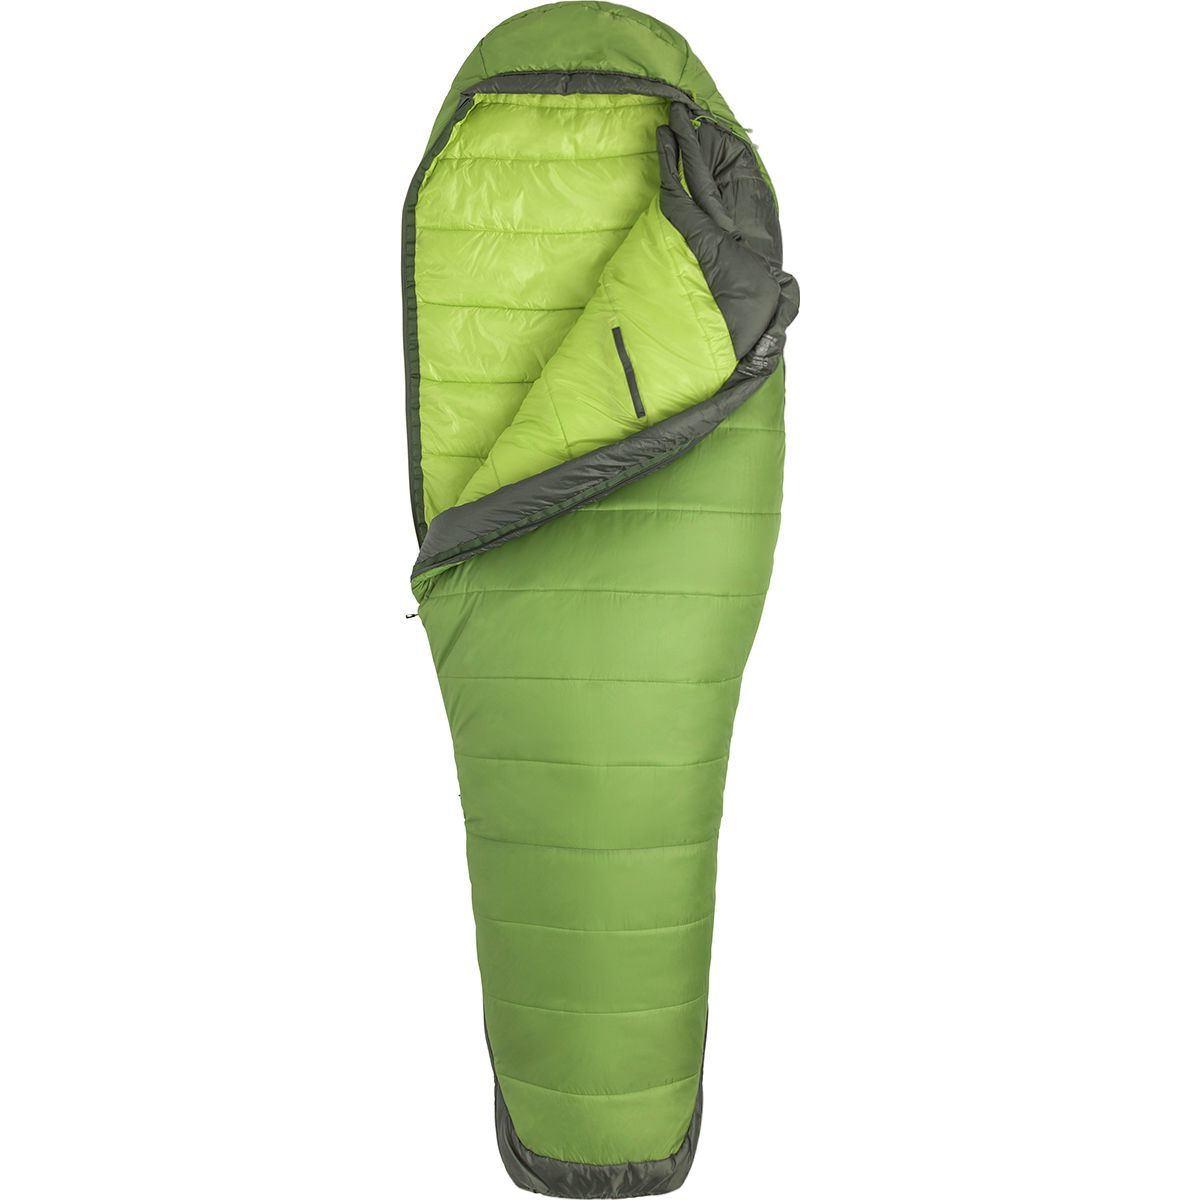 Marmot Trestles Elite Eco 30 Sleeping Bag: 30 Degree Synthetic - Women's